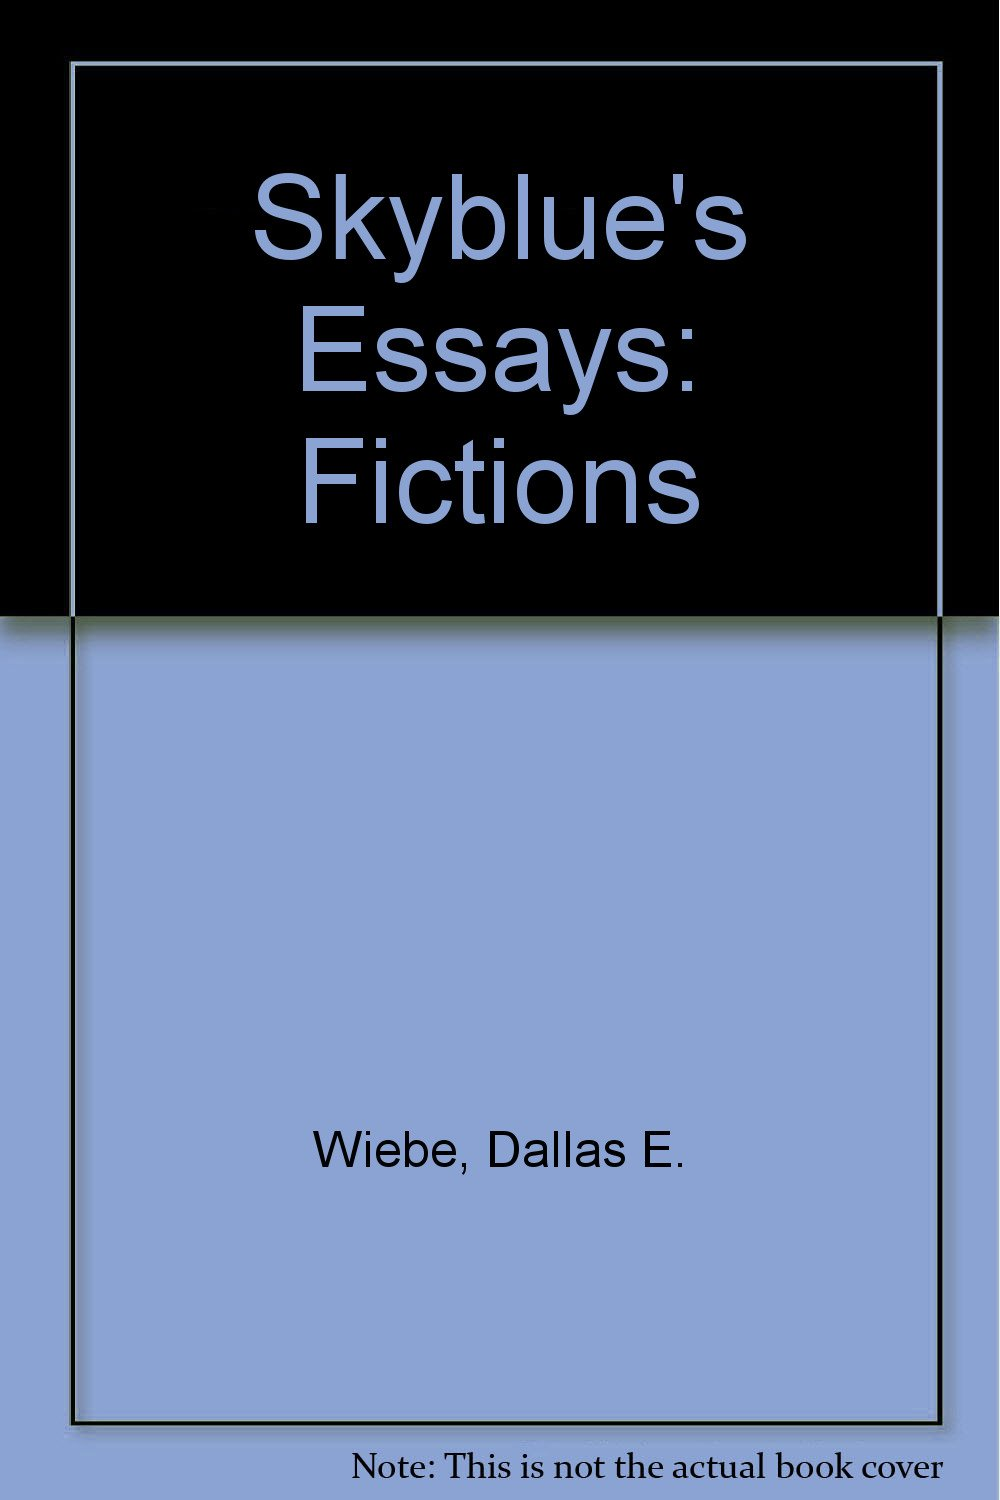 Skyblue's Essays: Short Prose book written by Dallas E. Wiebe